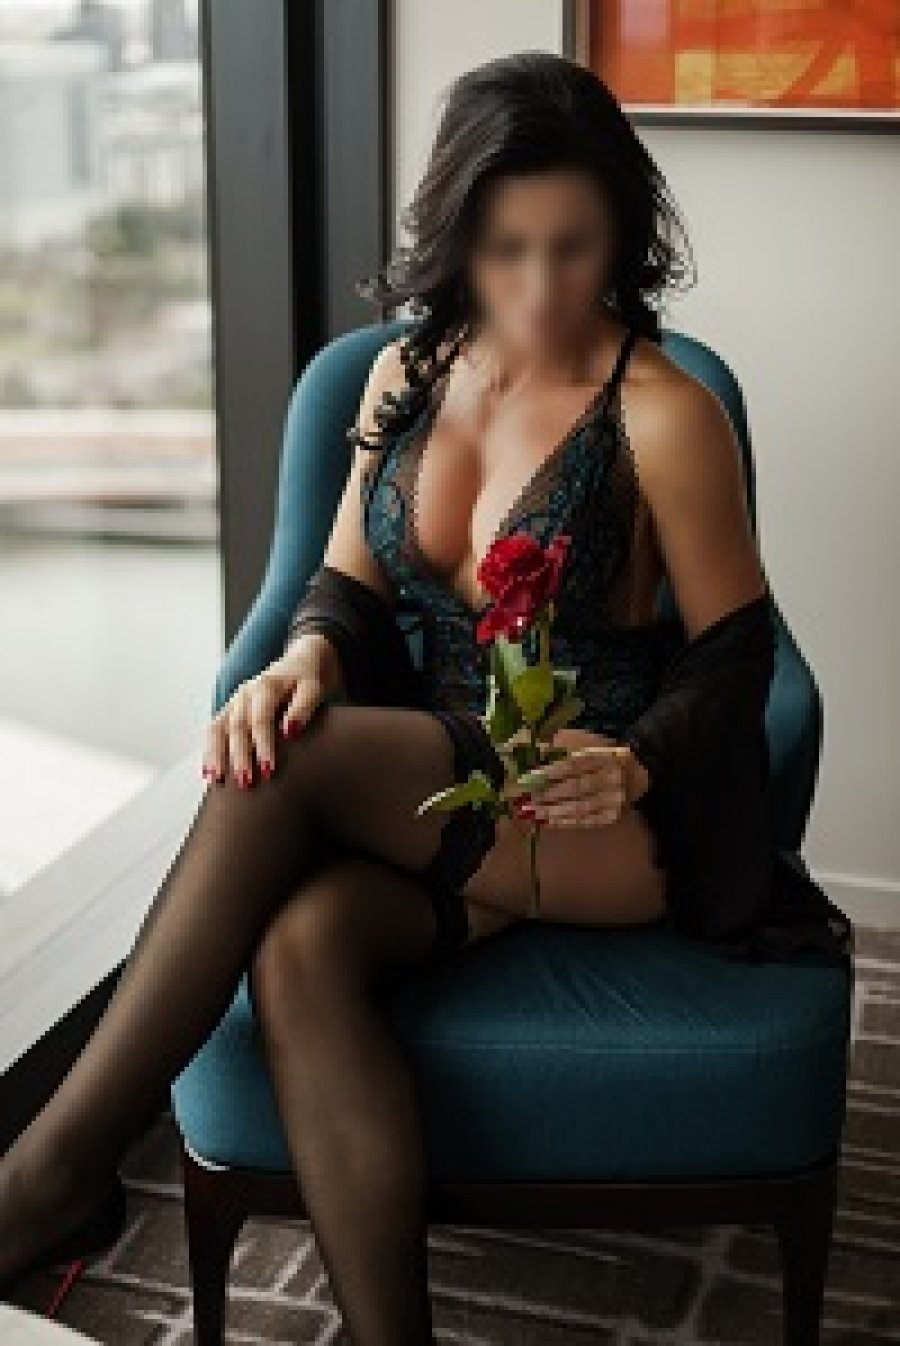 Fitness Model Melbourne Escort provides GFE service